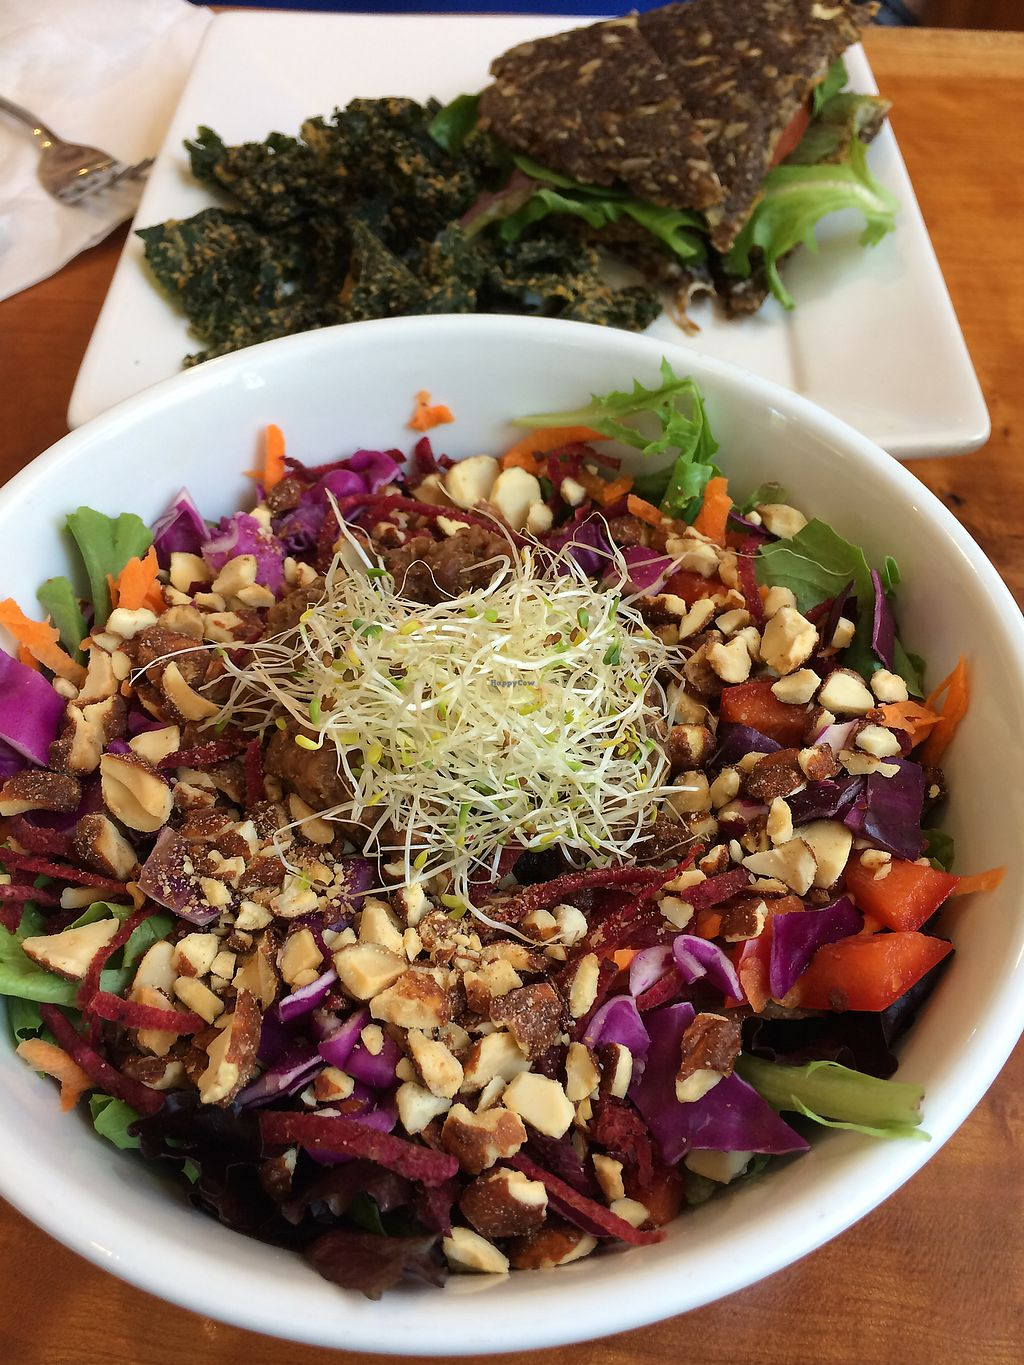 """Photo of Right Path Organic Cafe  by <a href=""""/members/profile/Indyk"""">Indyk</a> <br/>Speech Bowl <br/> July 22, 2017  - <a href='/contact/abuse/image/65514/283271'>Report</a>"""